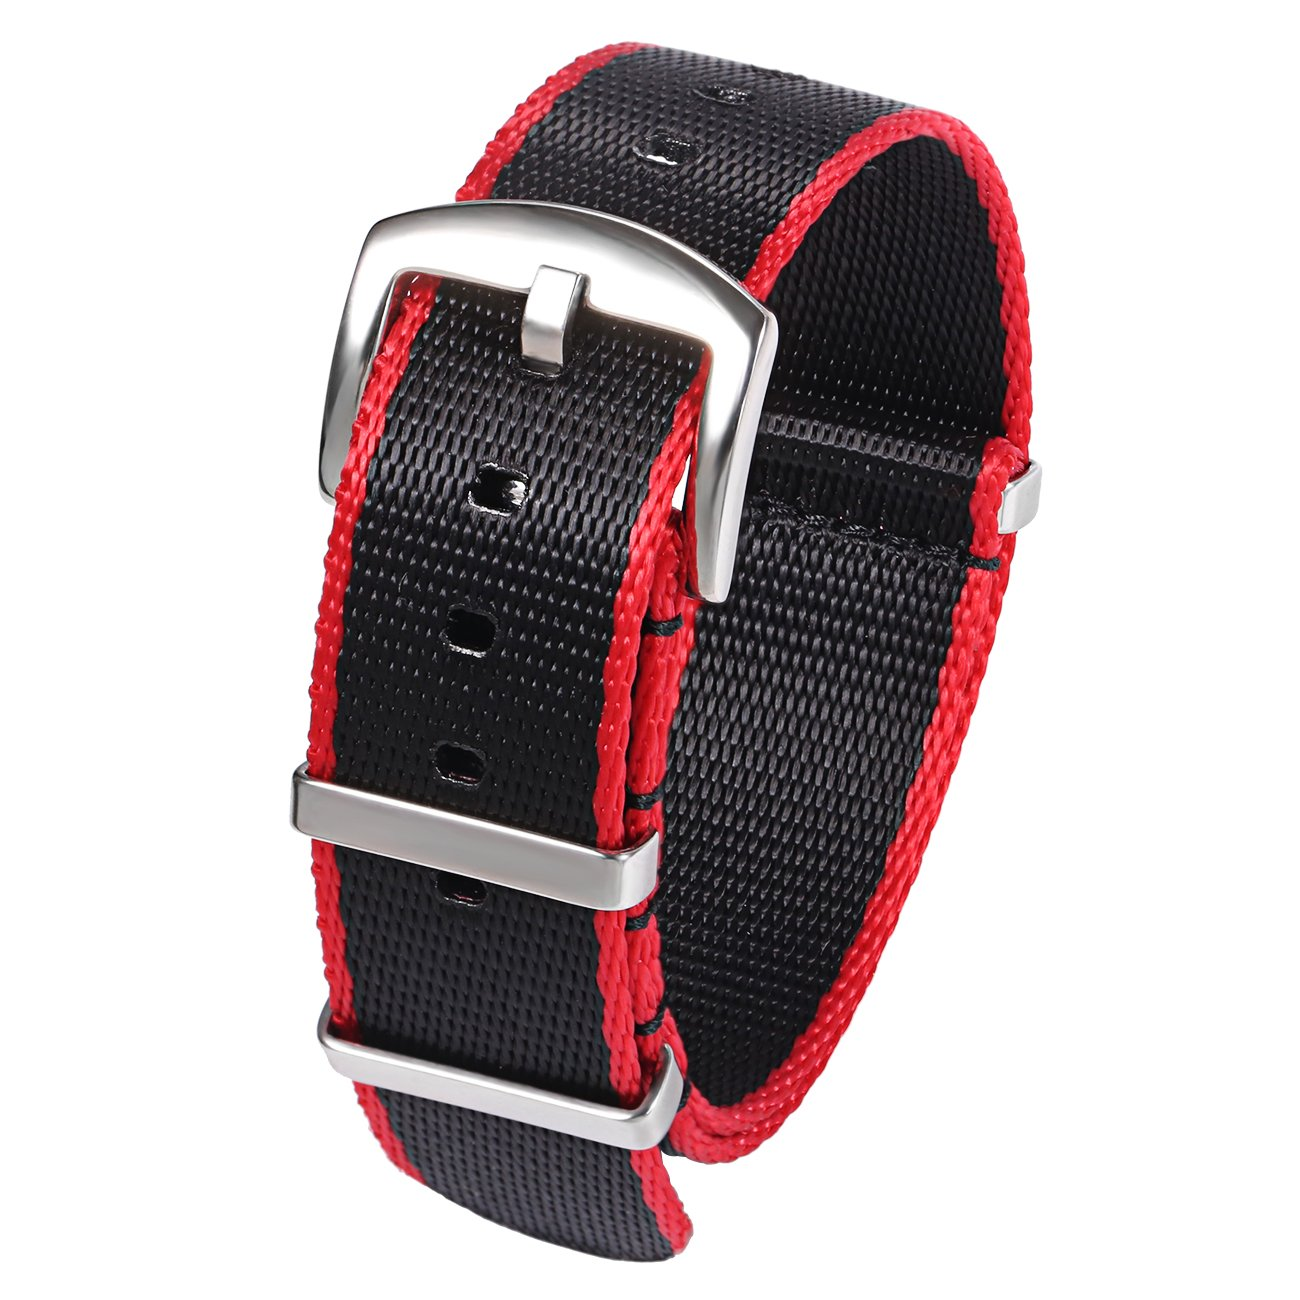 PBCODE Seat Belt Nylon NATO Strap Heavy Duty Military G10 Watch Band Replacement Watch Straps 22mm Black Red